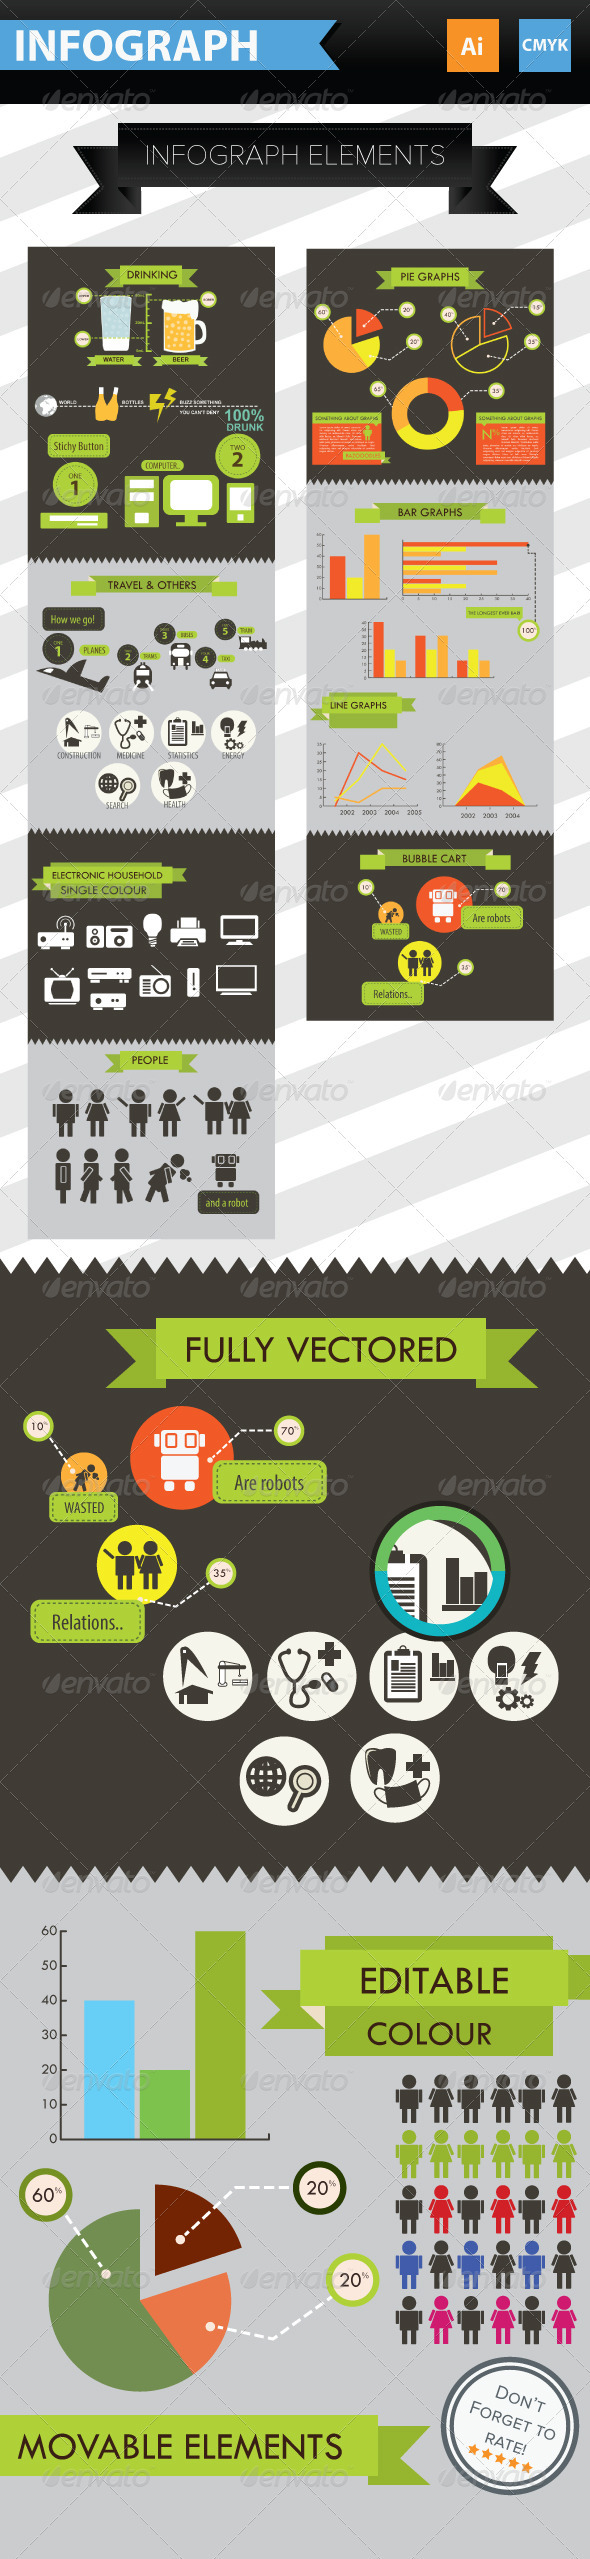 GraphicRiver Infographic Elements & Icons 3792005